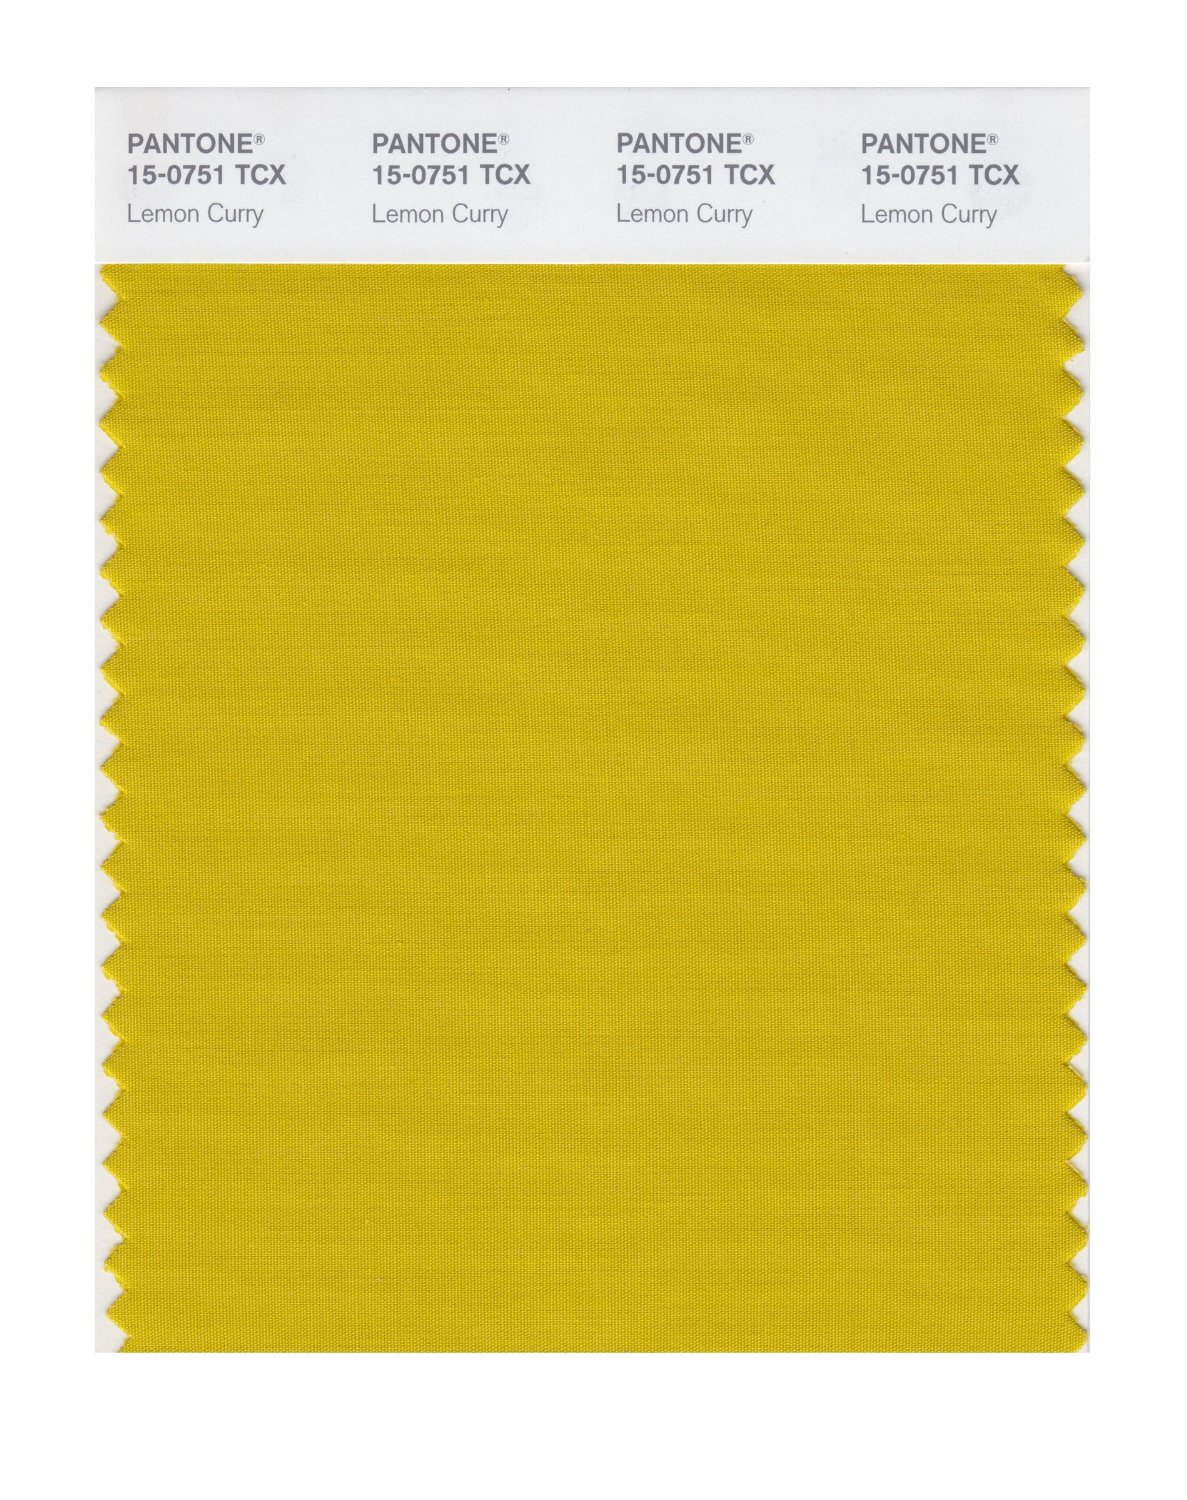 Pantone Smart Swatch 15-0751 Lemon Curry